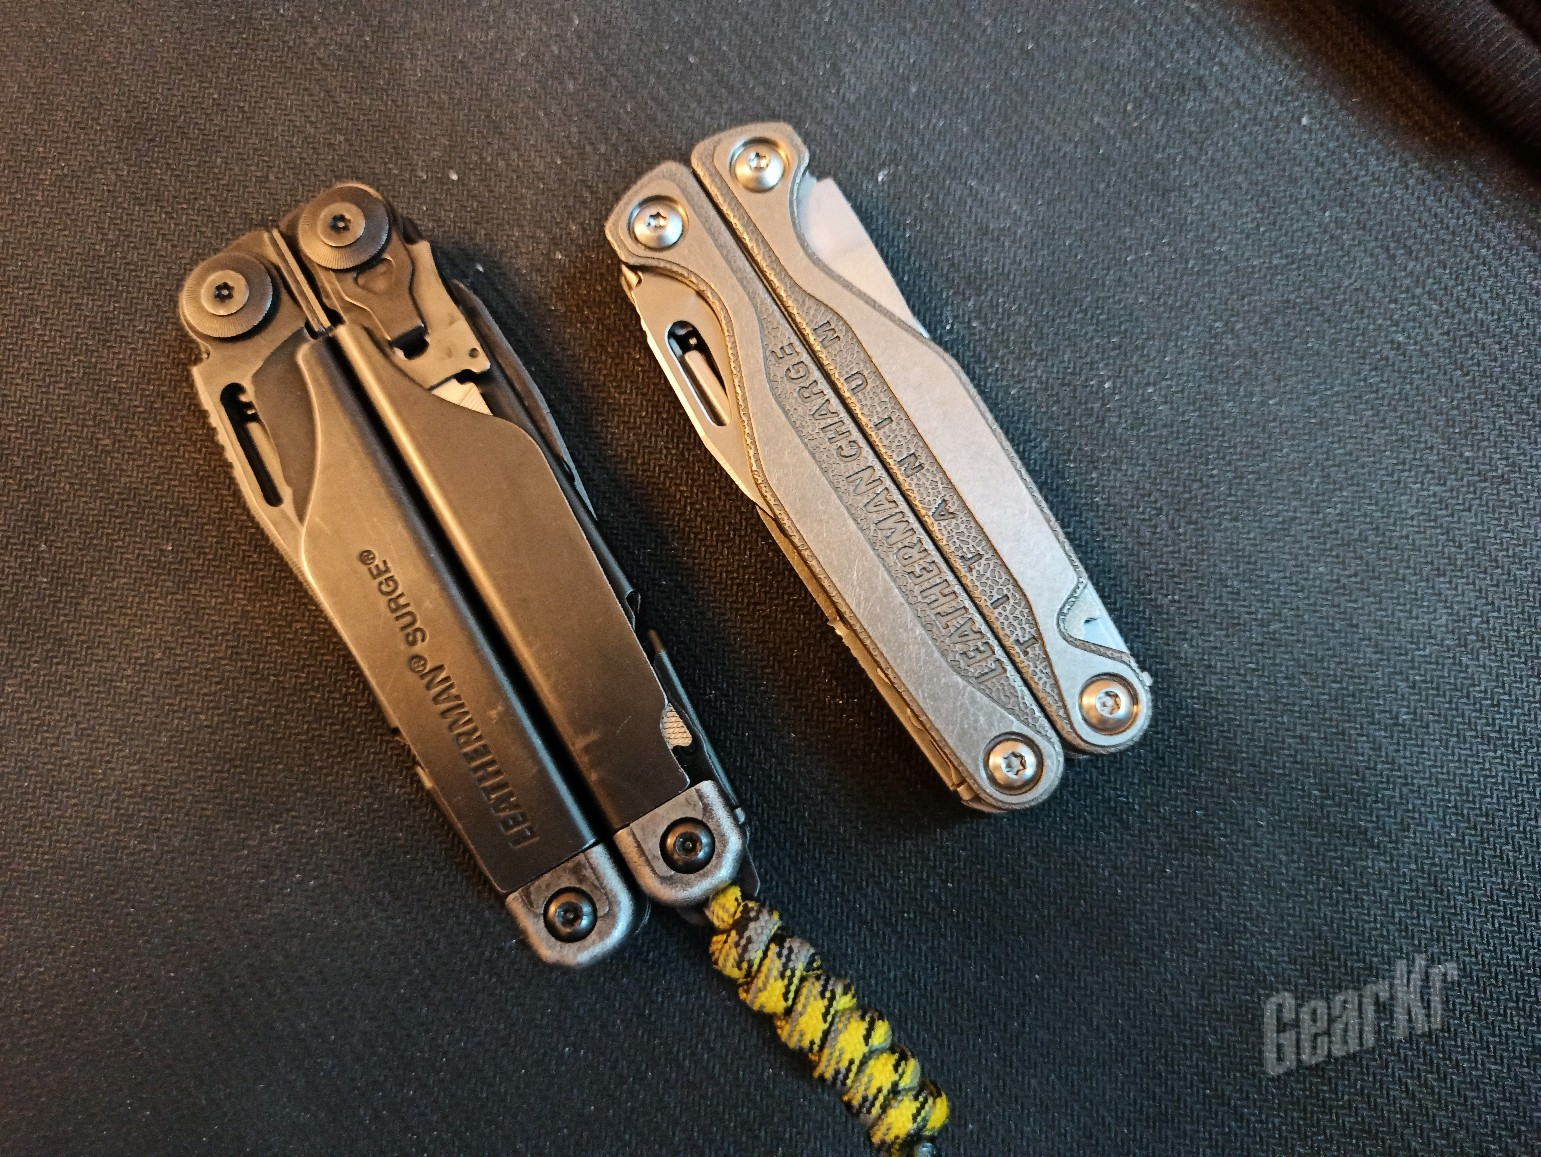 Leatherman TTI PLUS开箱评测